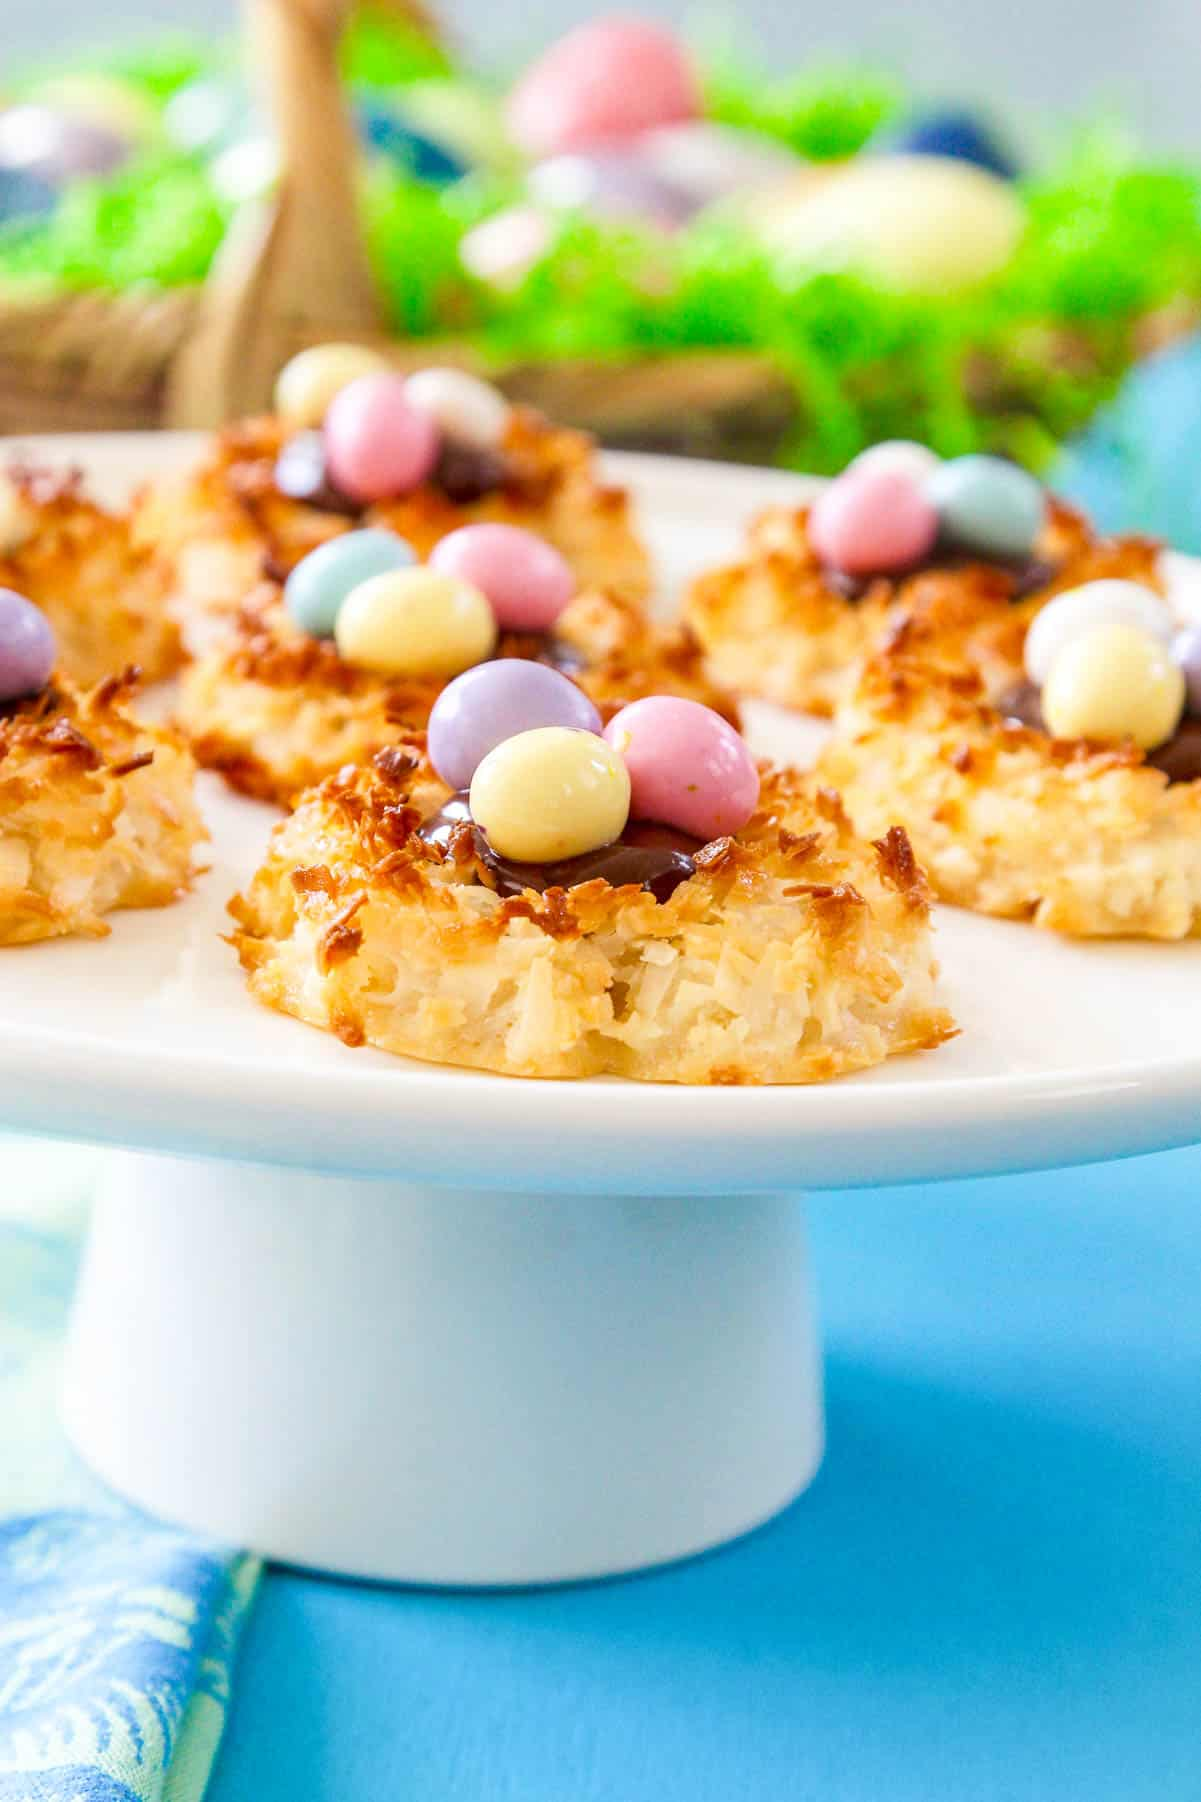 A white round platter of bird's nest coconut macaroon cookies topped with chocolate and 3 colorful egg candies.